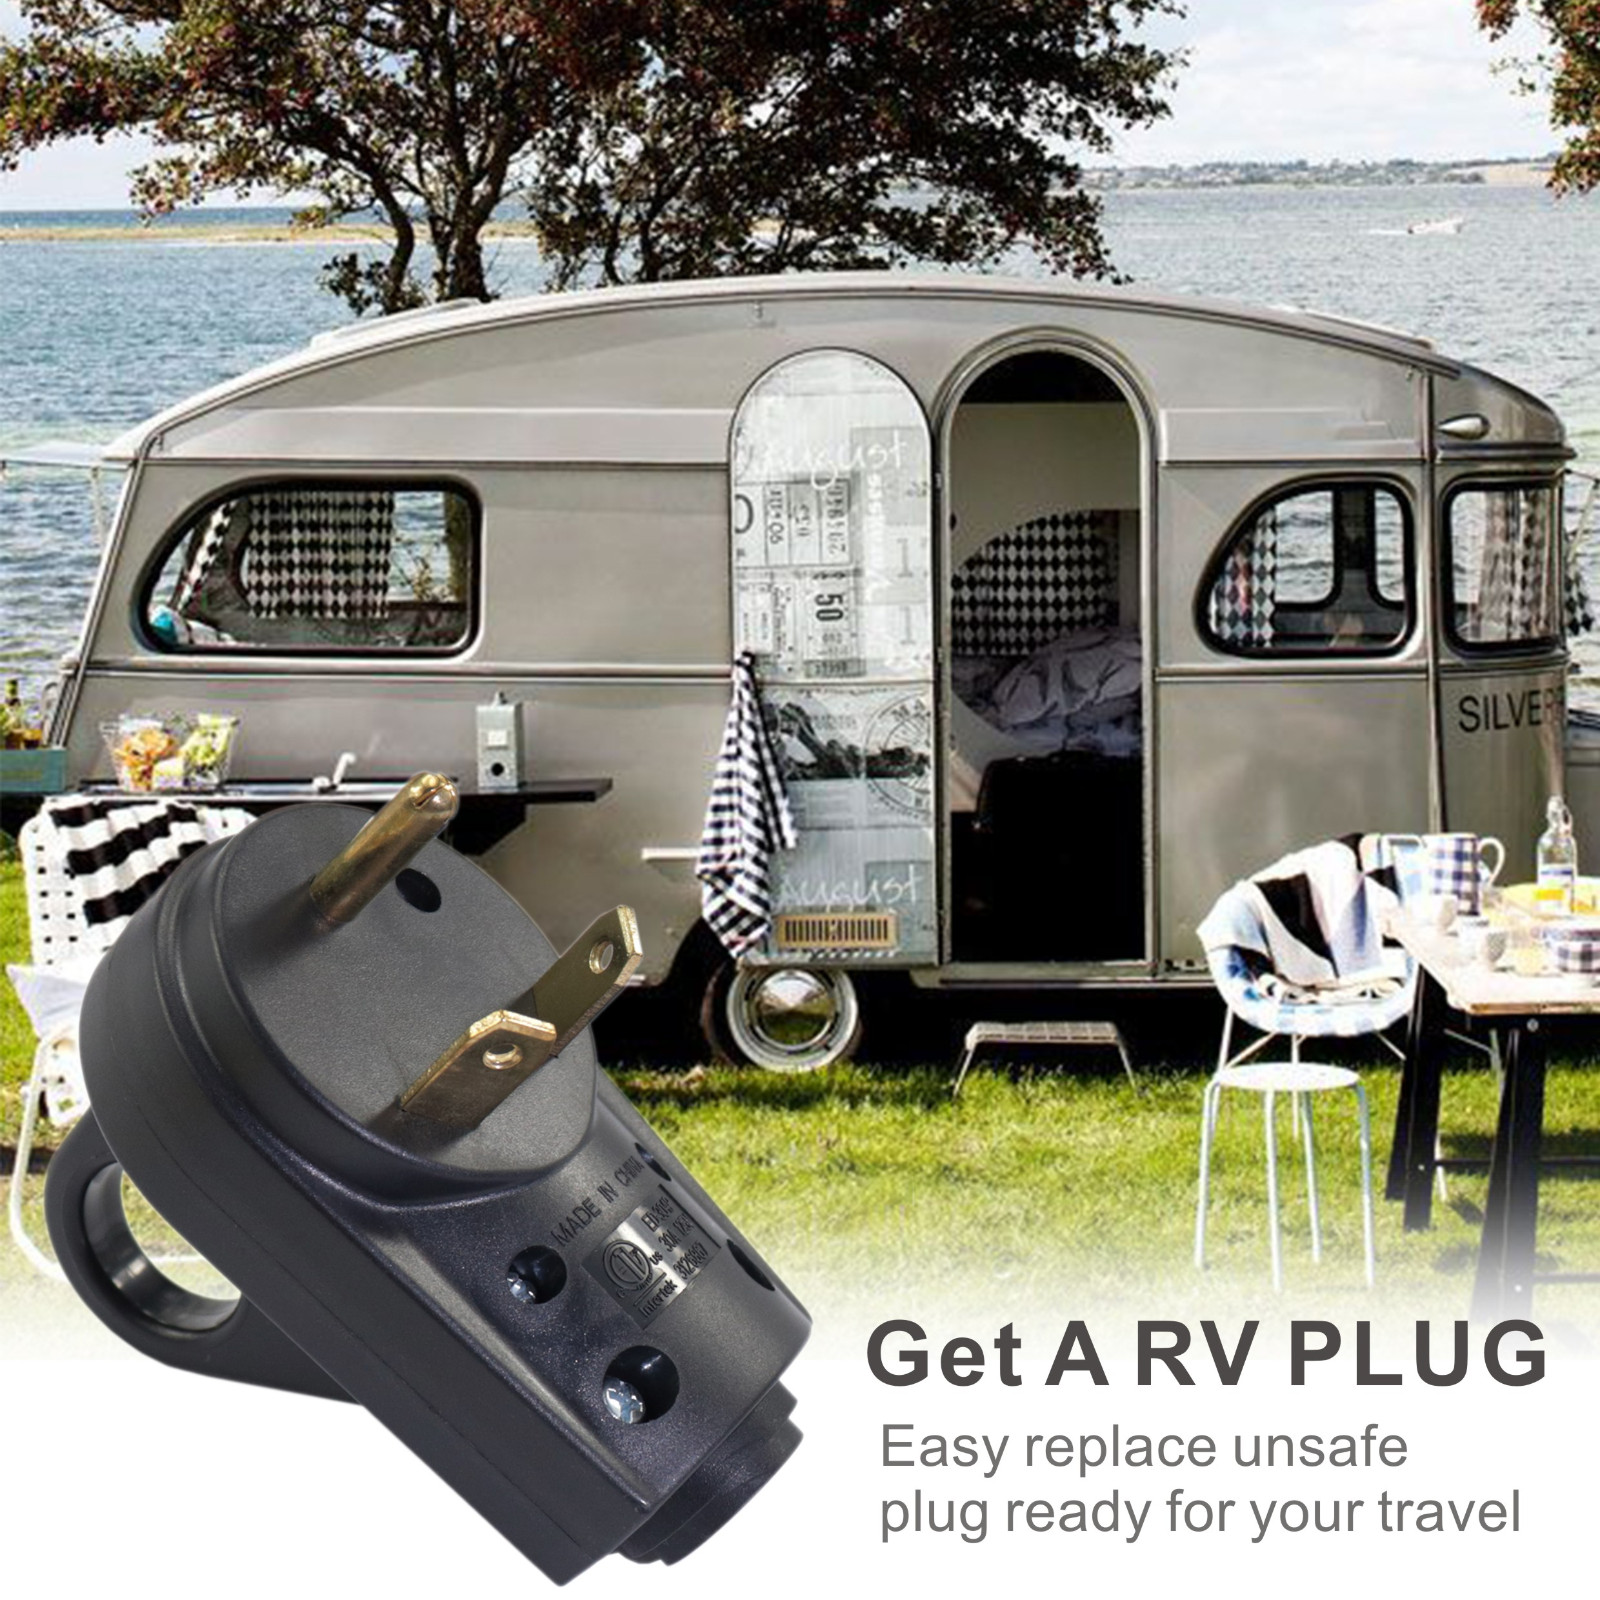 Motorhome 50 Amp Male Heavy Duty RV Replacement Receptacle Plug Electrical Plug Adapter with an Easy-Grip Handle for RV Trailer Camper Boats